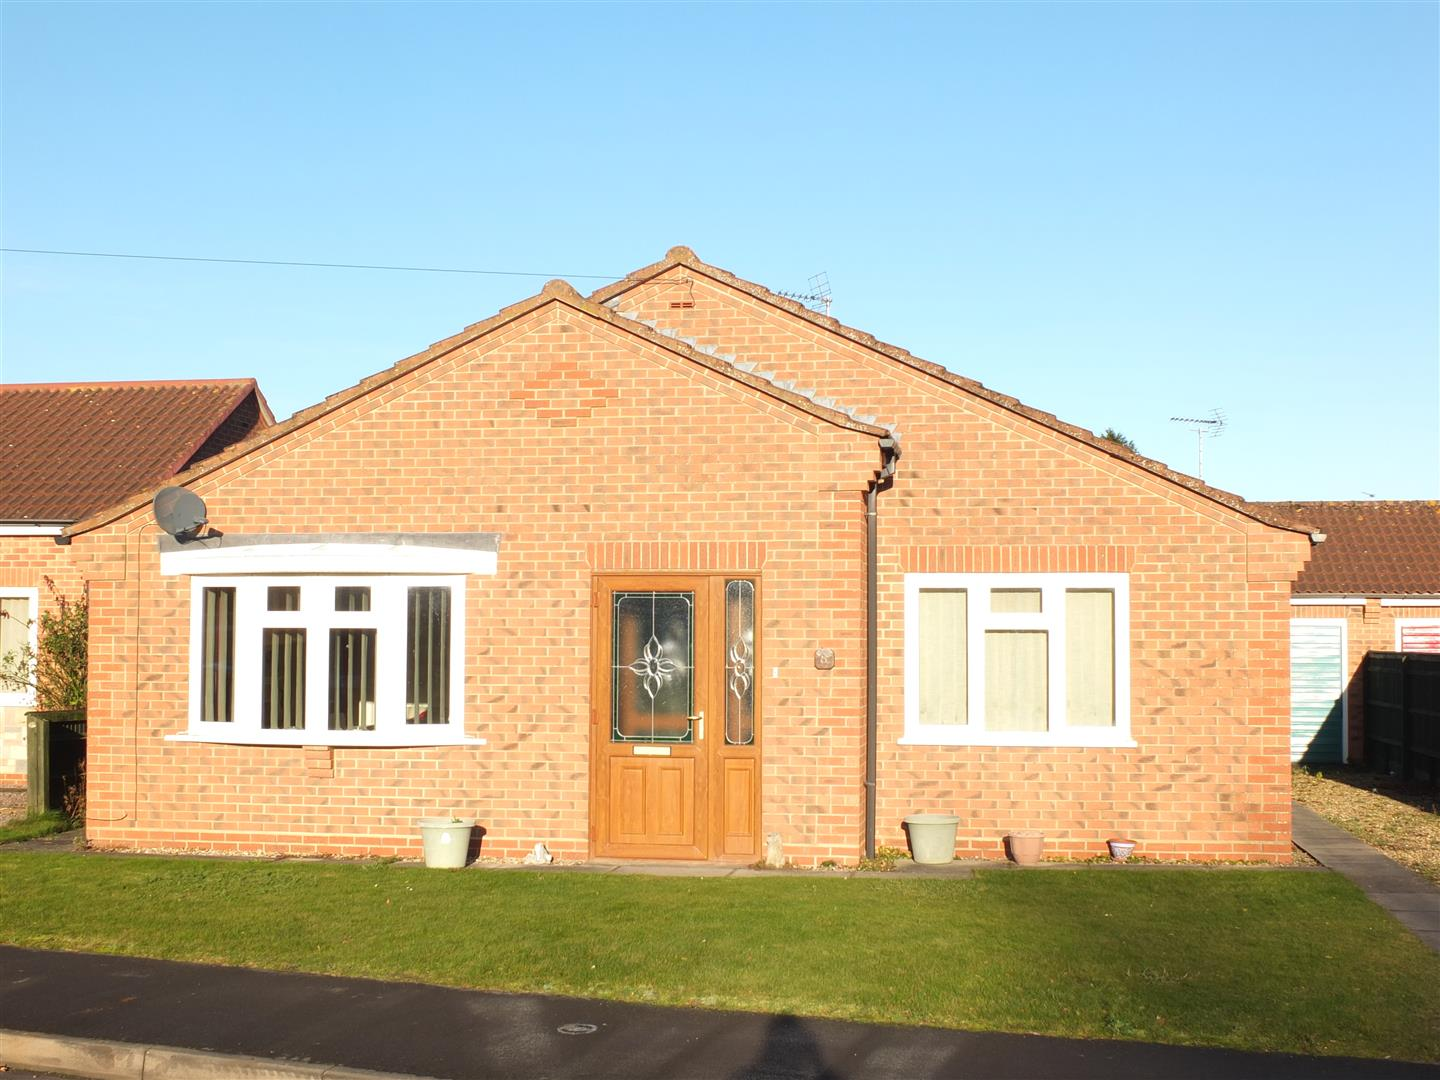 3 bed detached bungalow to rent in Holbeach Spalding, PE12 7JS - Property Image 1